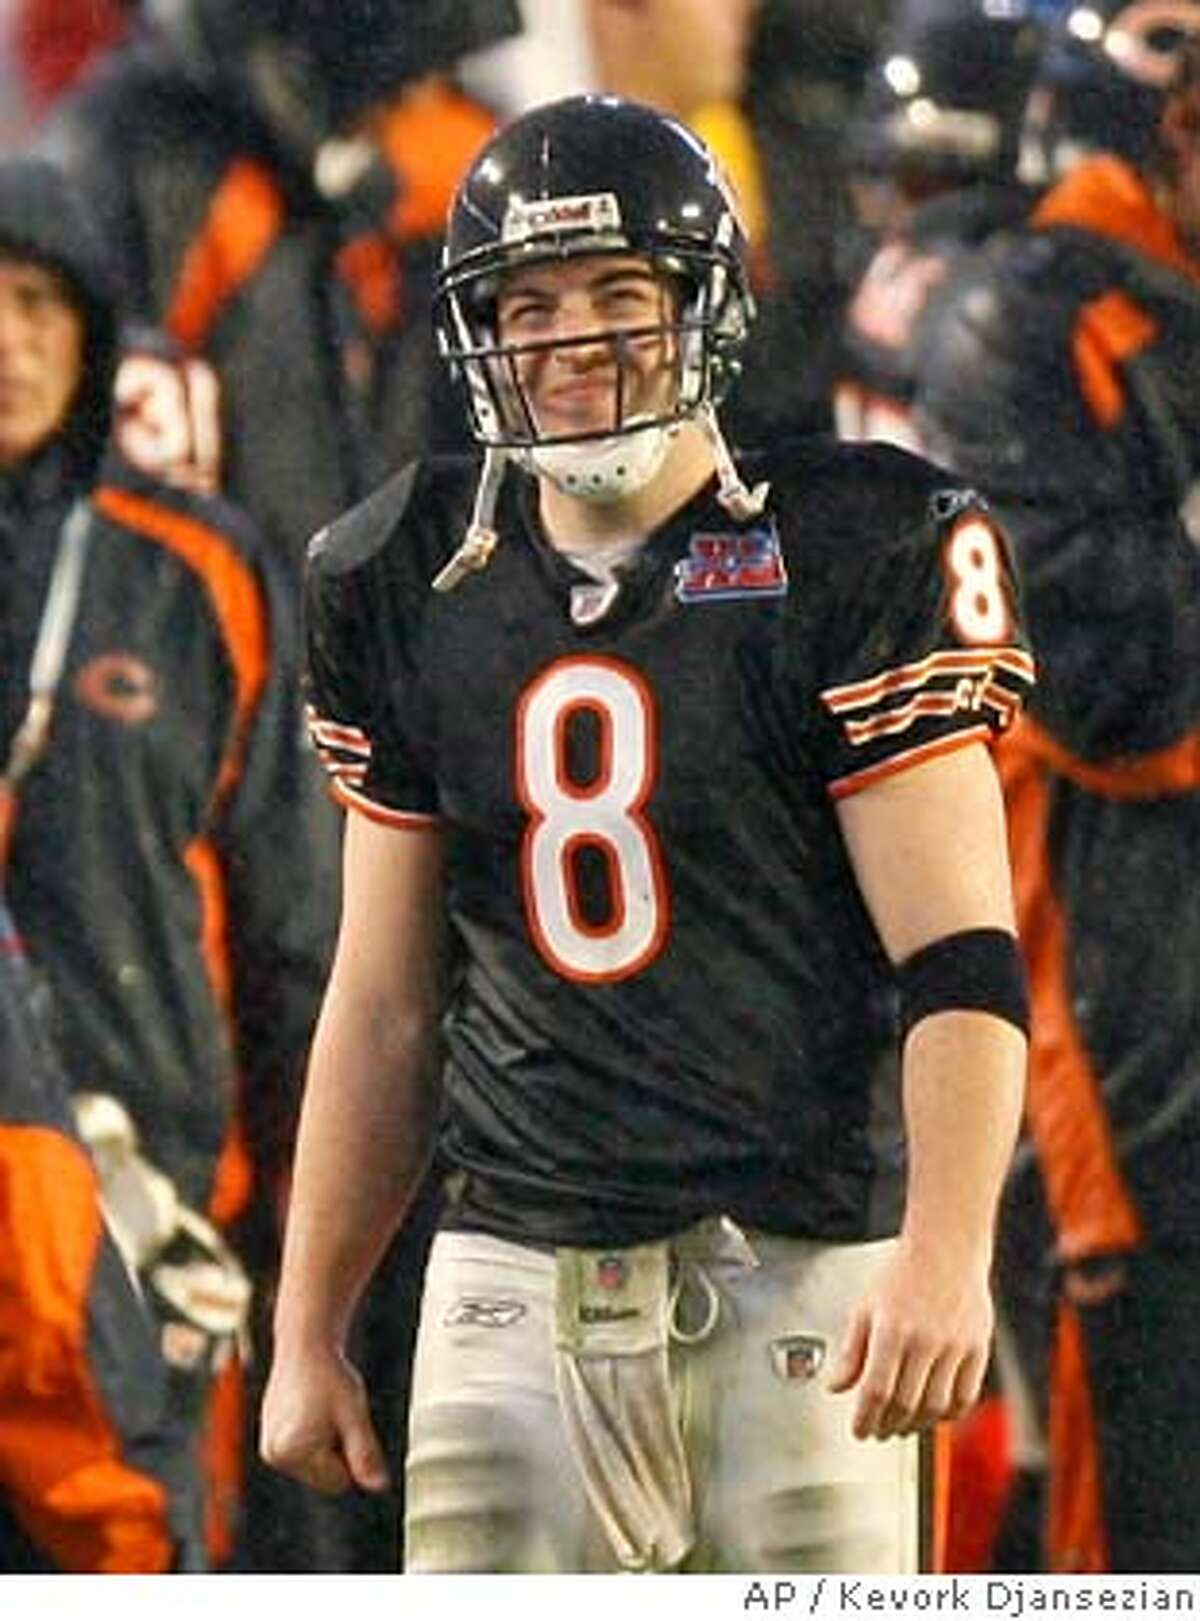 Chicago Bears quarterback Rex Grossman (8) looks up at the scoreboard after Indianapolis Colts kicker Adam Vinatieri kicked a 20-yard field goal in the third quarter of Super Bowl XLI football game at Dolphin Stadium in Miami on Sunday, Feb. 4, 2007. (AP Photo/Kevork Djansezian)